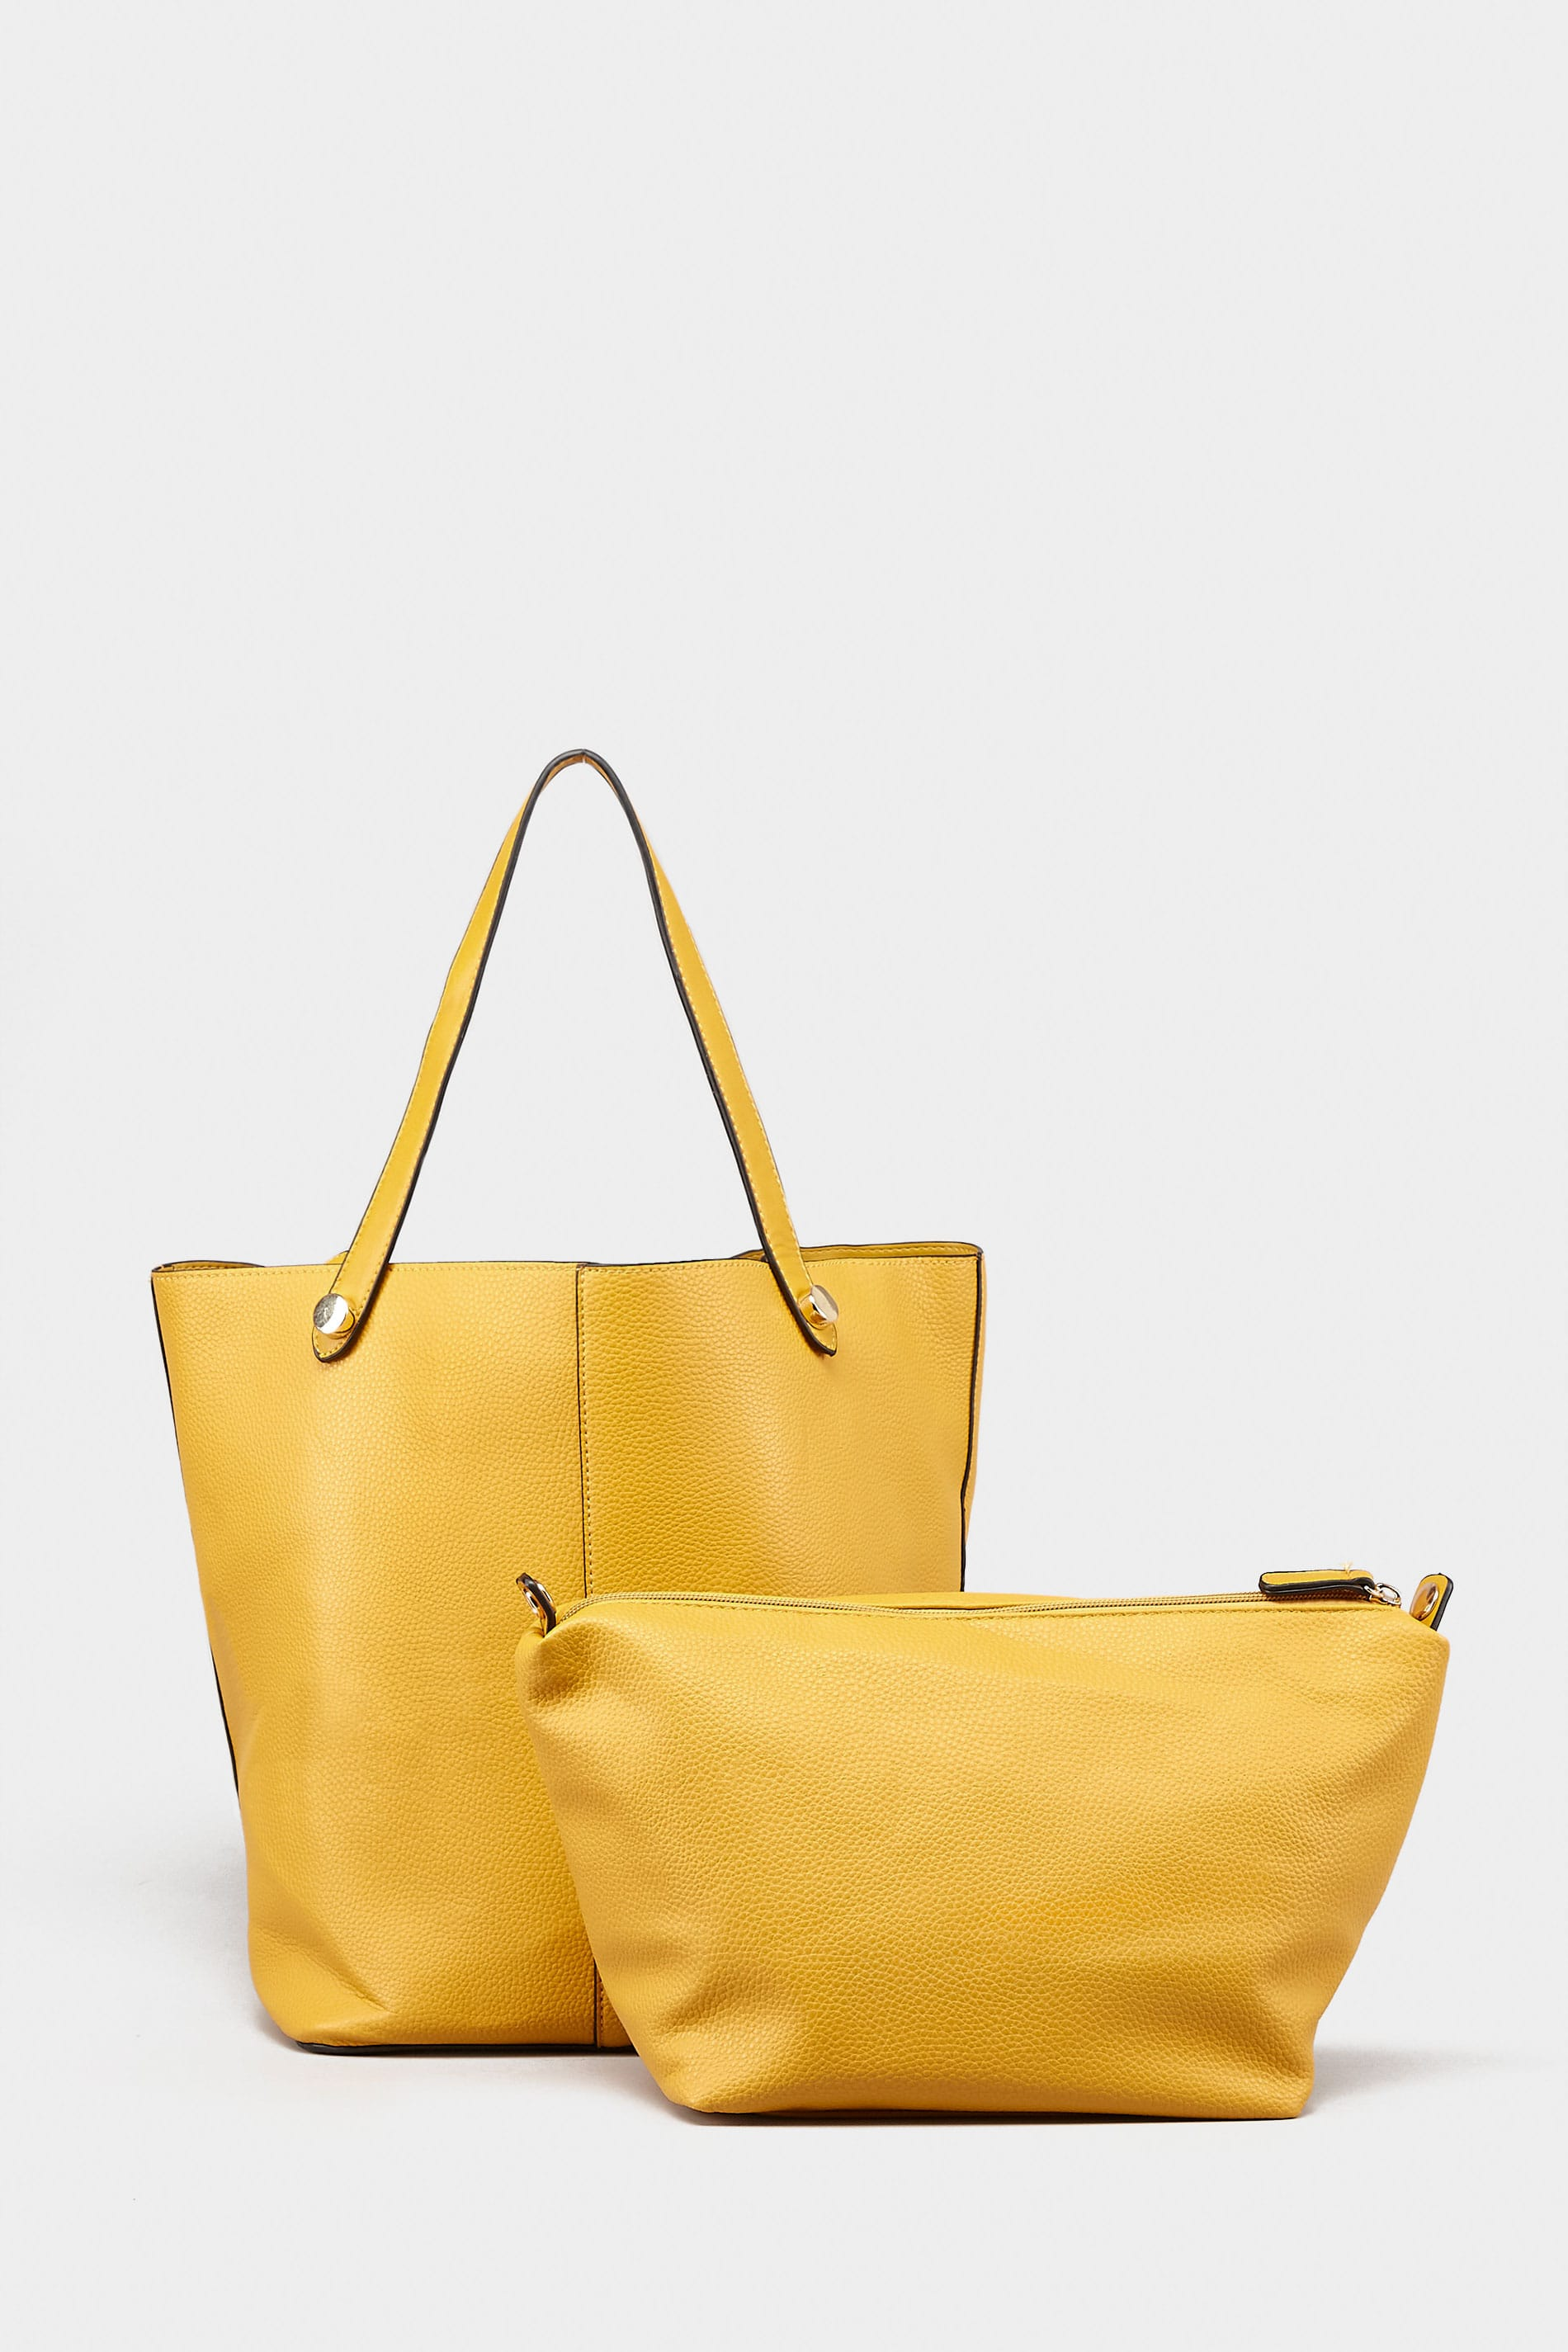 Mustard Yellow Grained Tote Bag With Removable Compartment